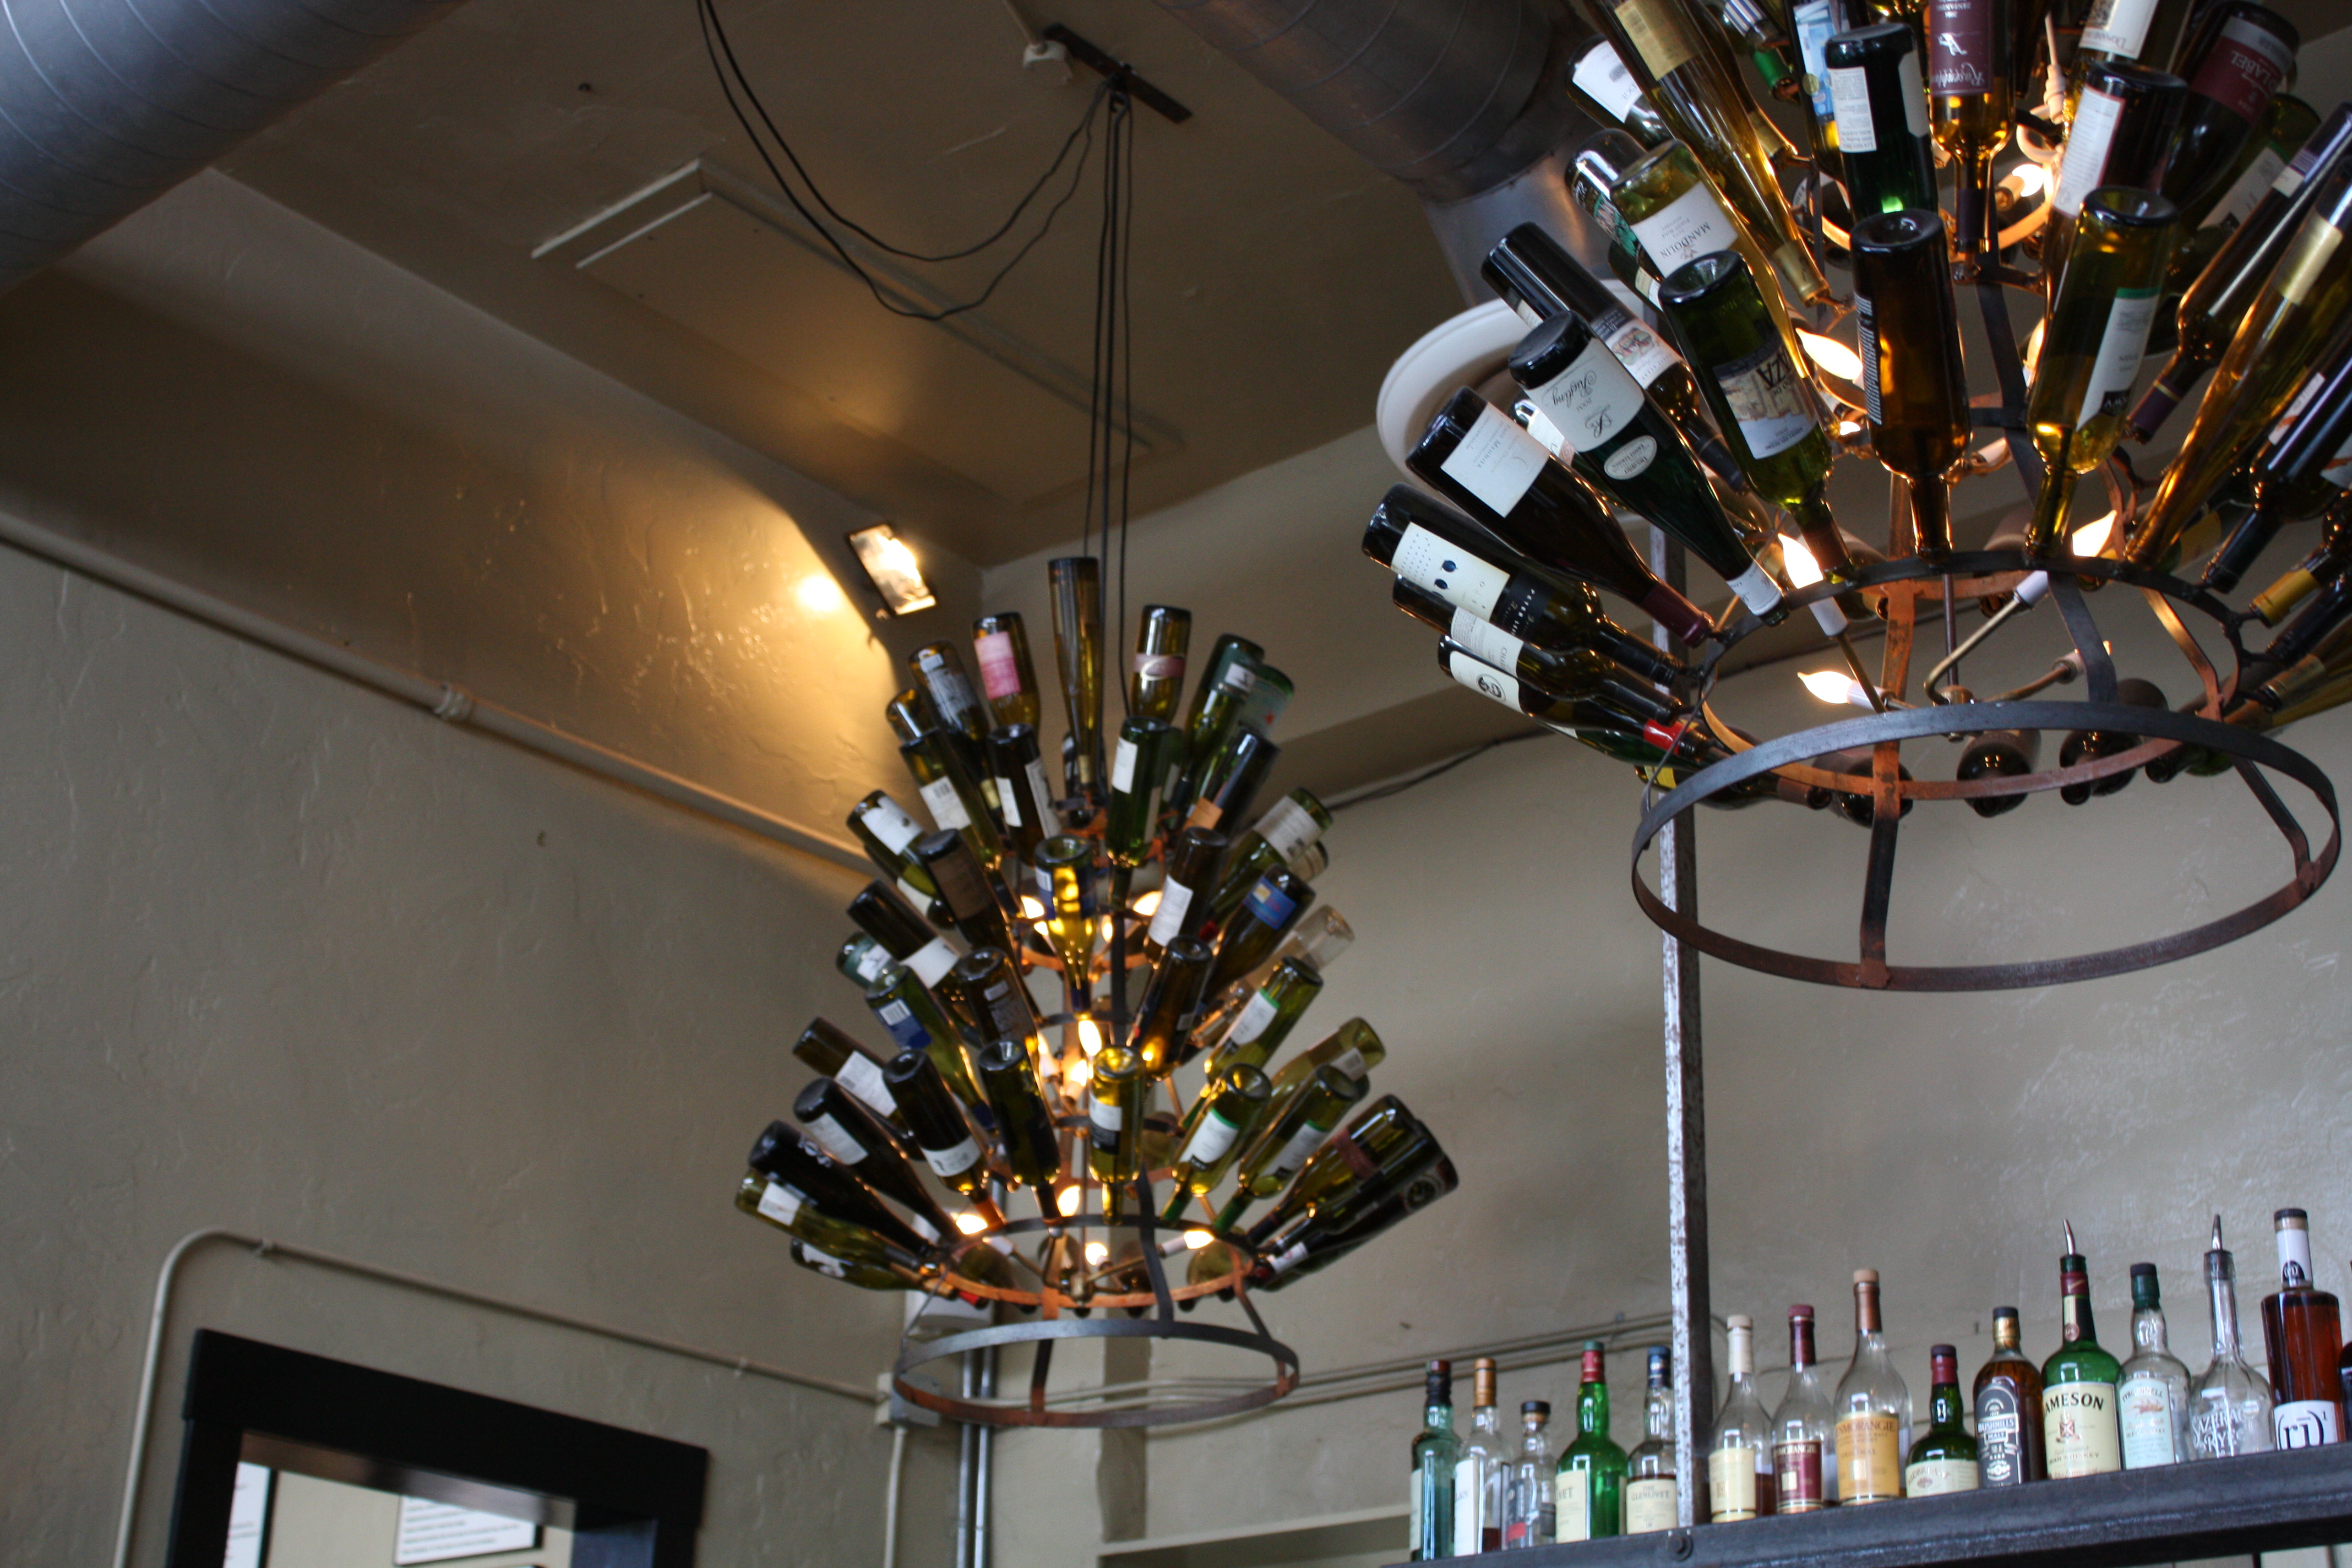 Playful Refined Wine Bottle Chandelier Idea With Round Tiered Iron Frame Beneath White Ceiling Gray